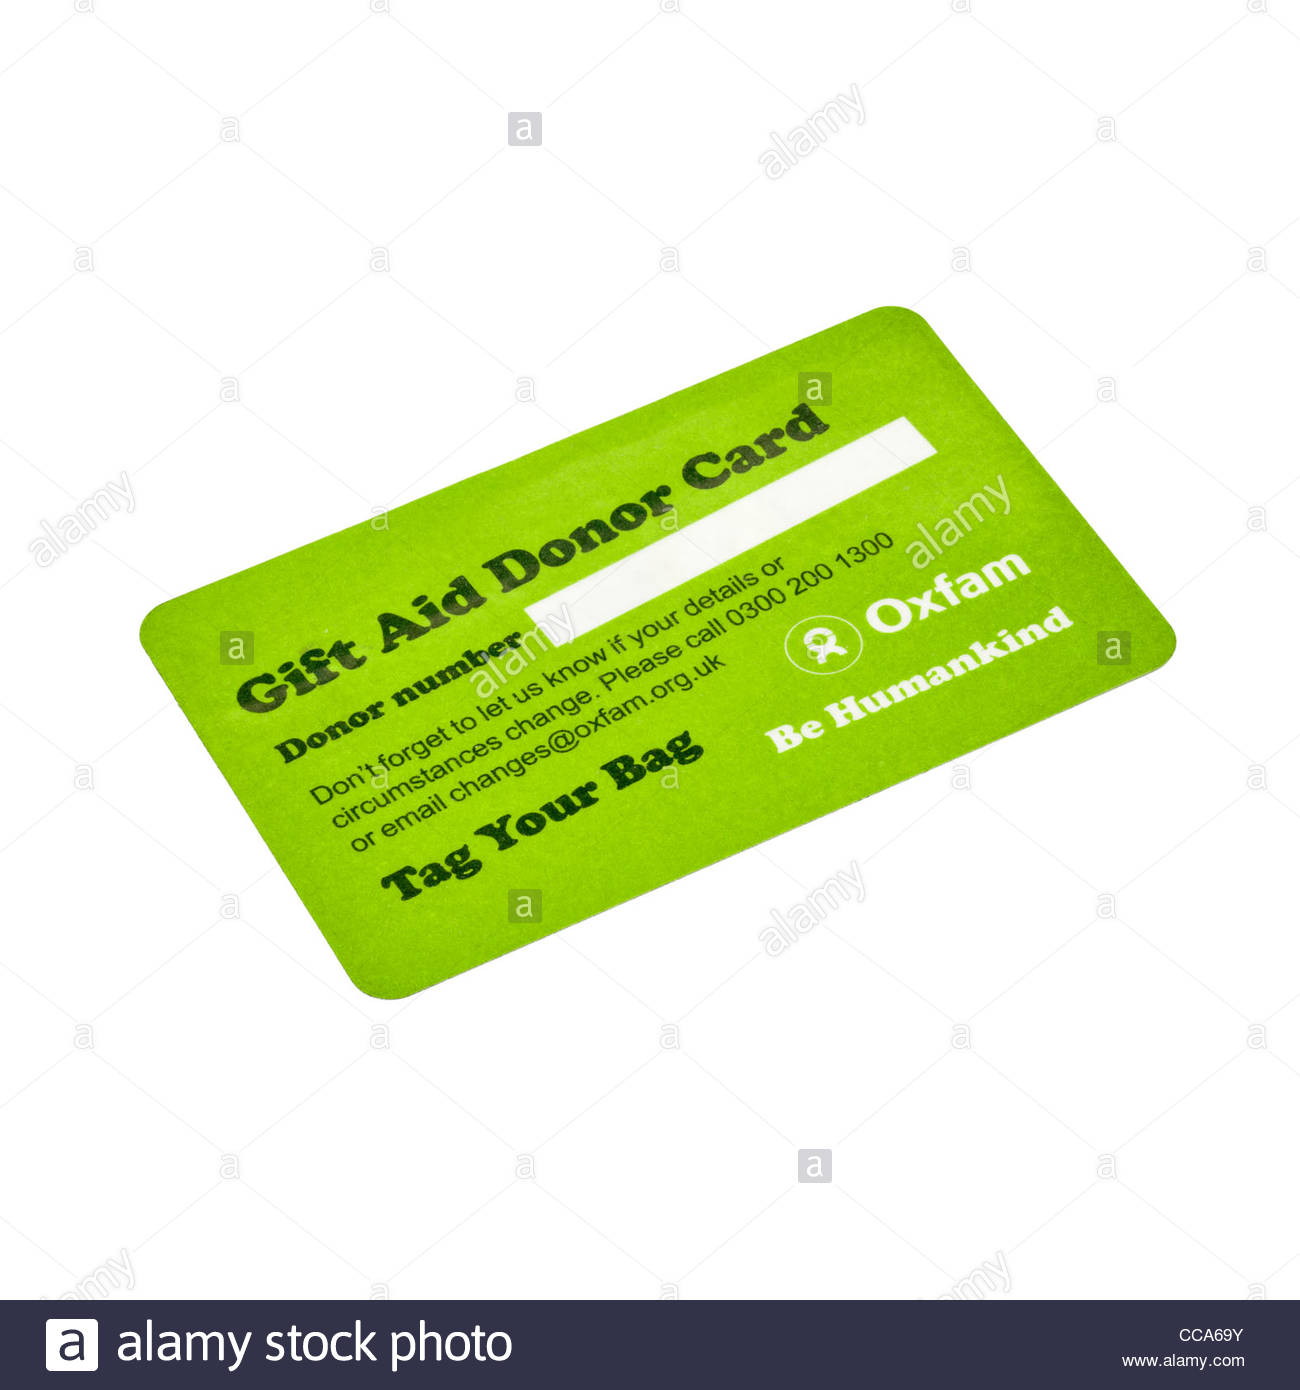 Oxfam gift aid donor card stock photo 42021111 alamy oxfam gift aid donor card negle Images